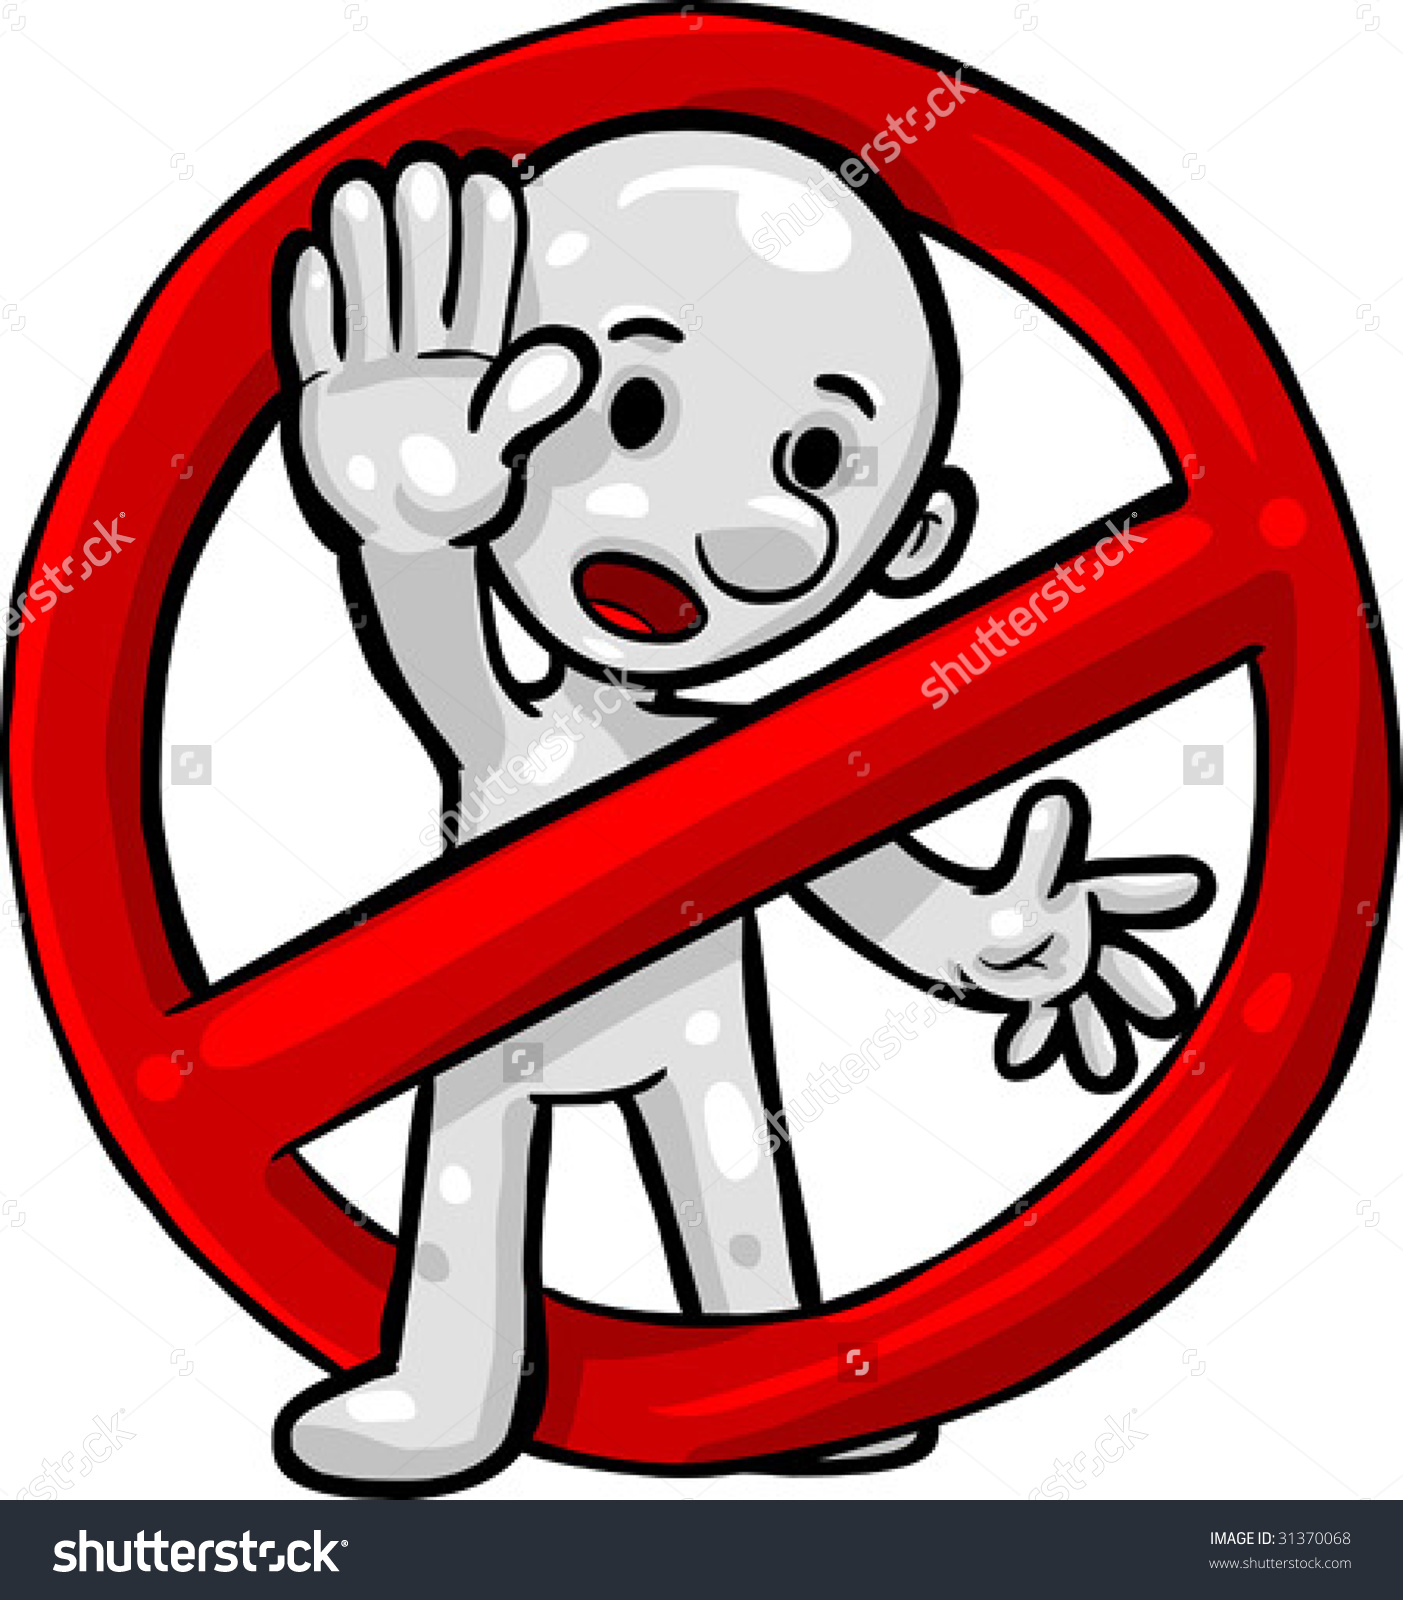 Allowed clipart - Clipground